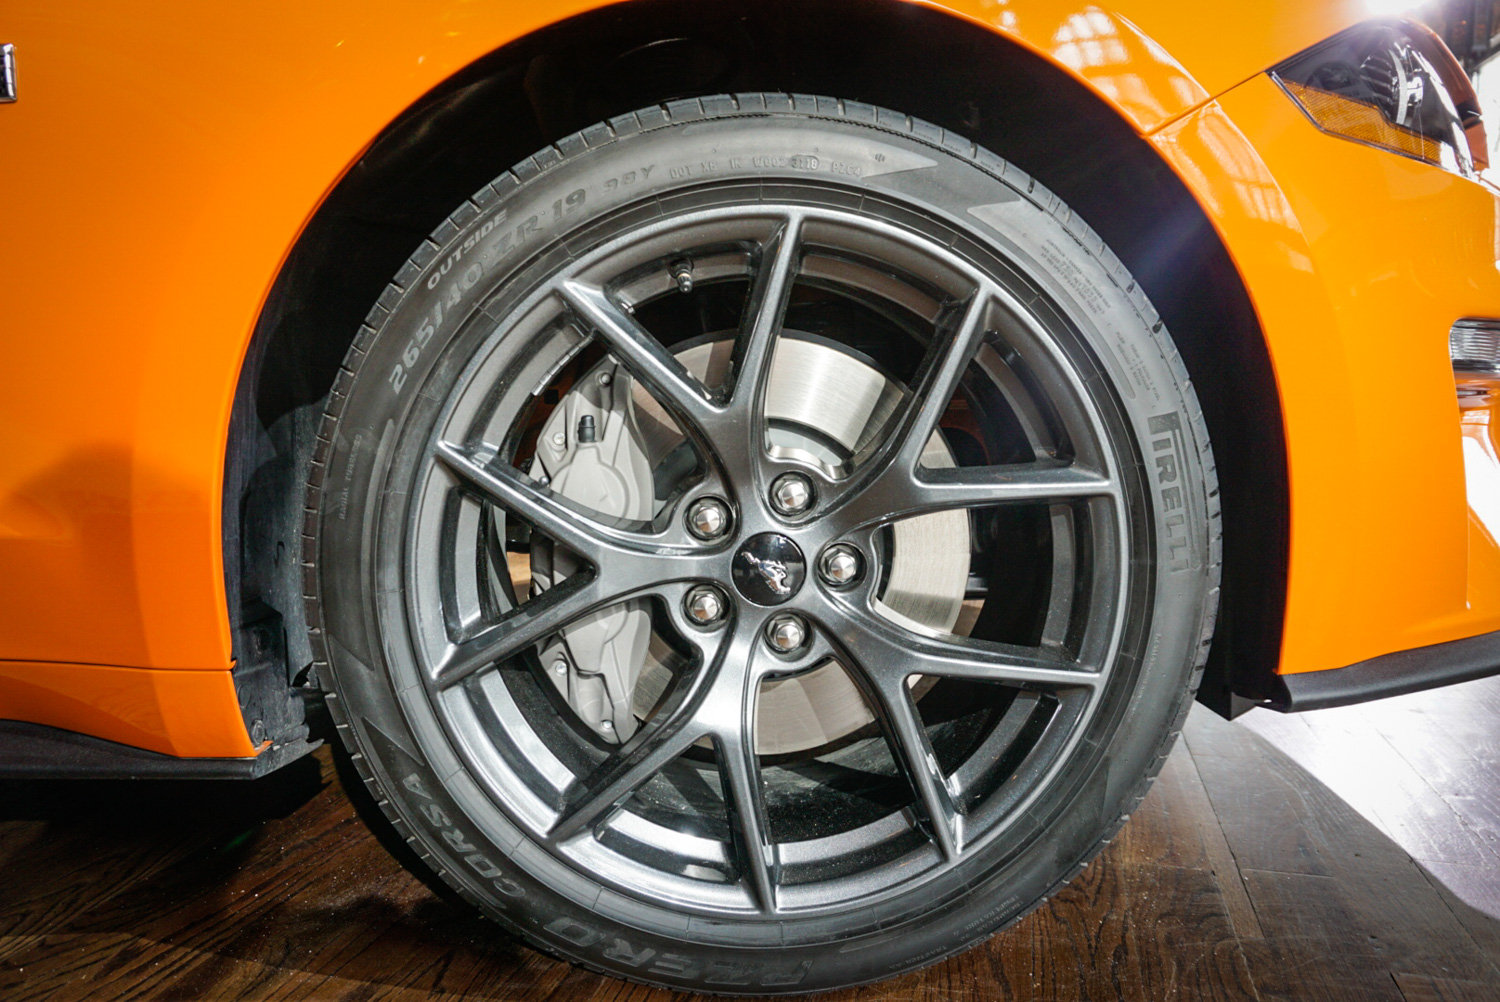 2020 Ford Mustang Ecoboost High Performance Package wheel